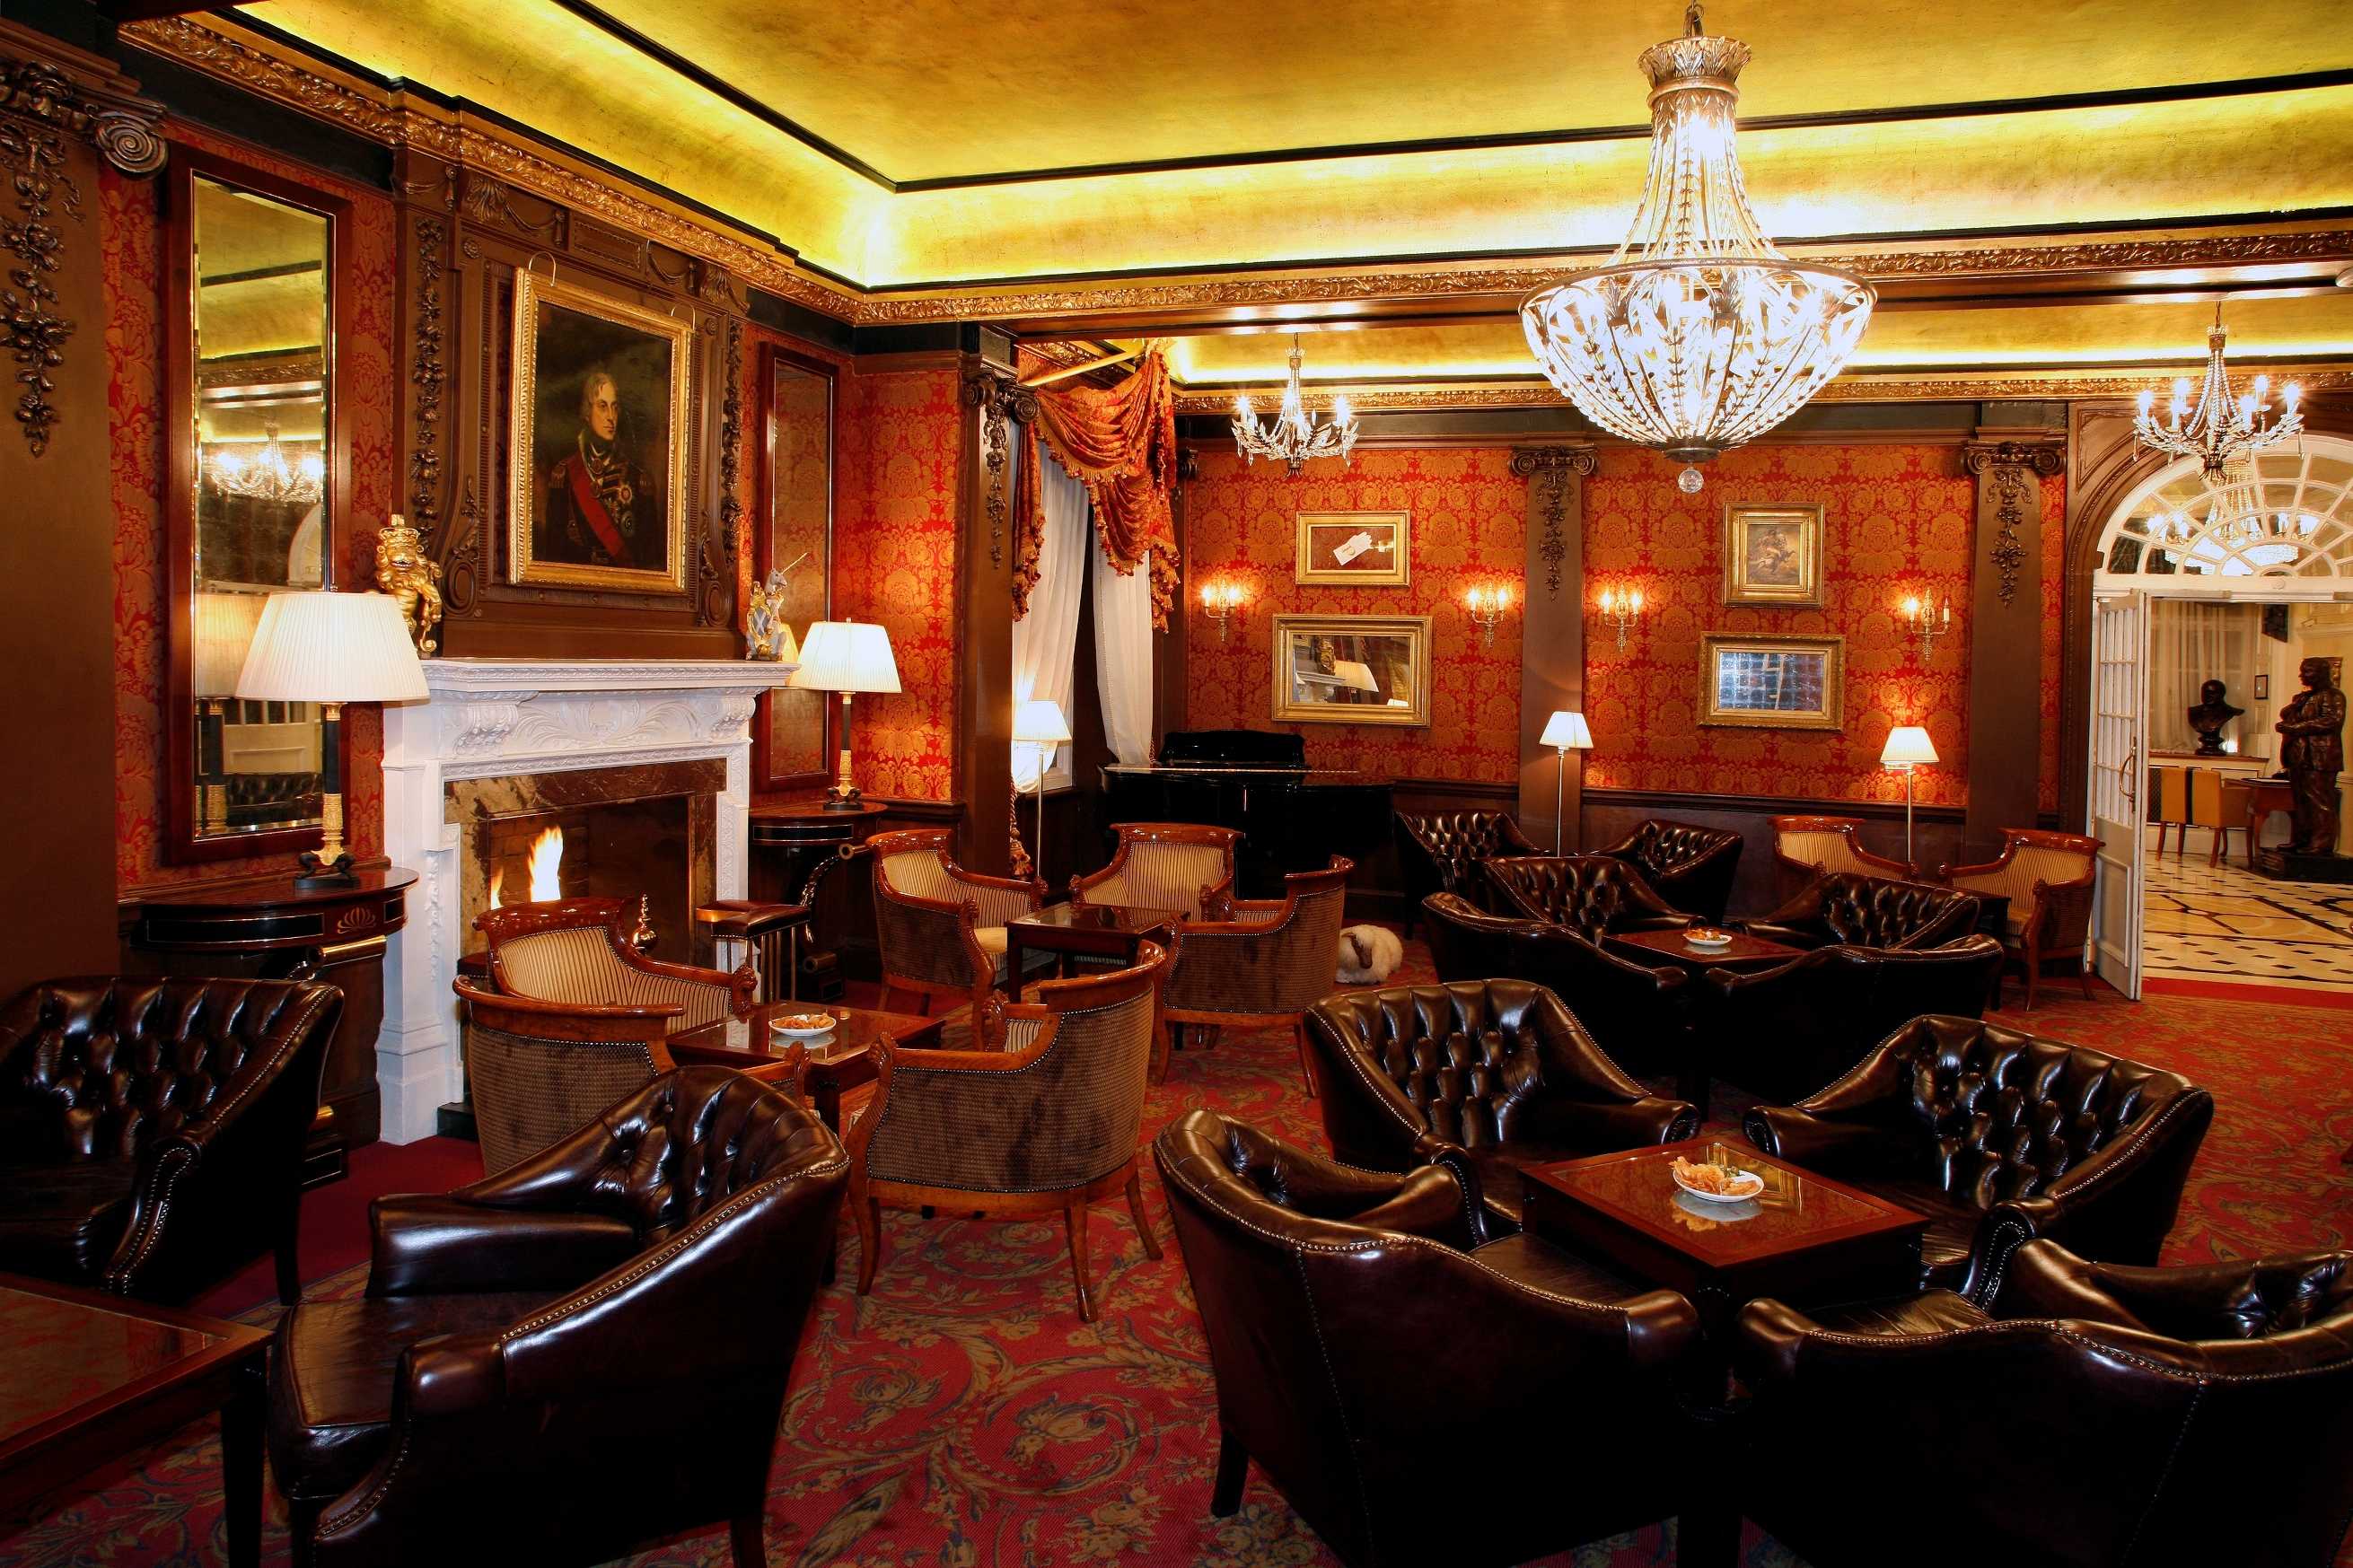 100 best hotels in London: The Goring